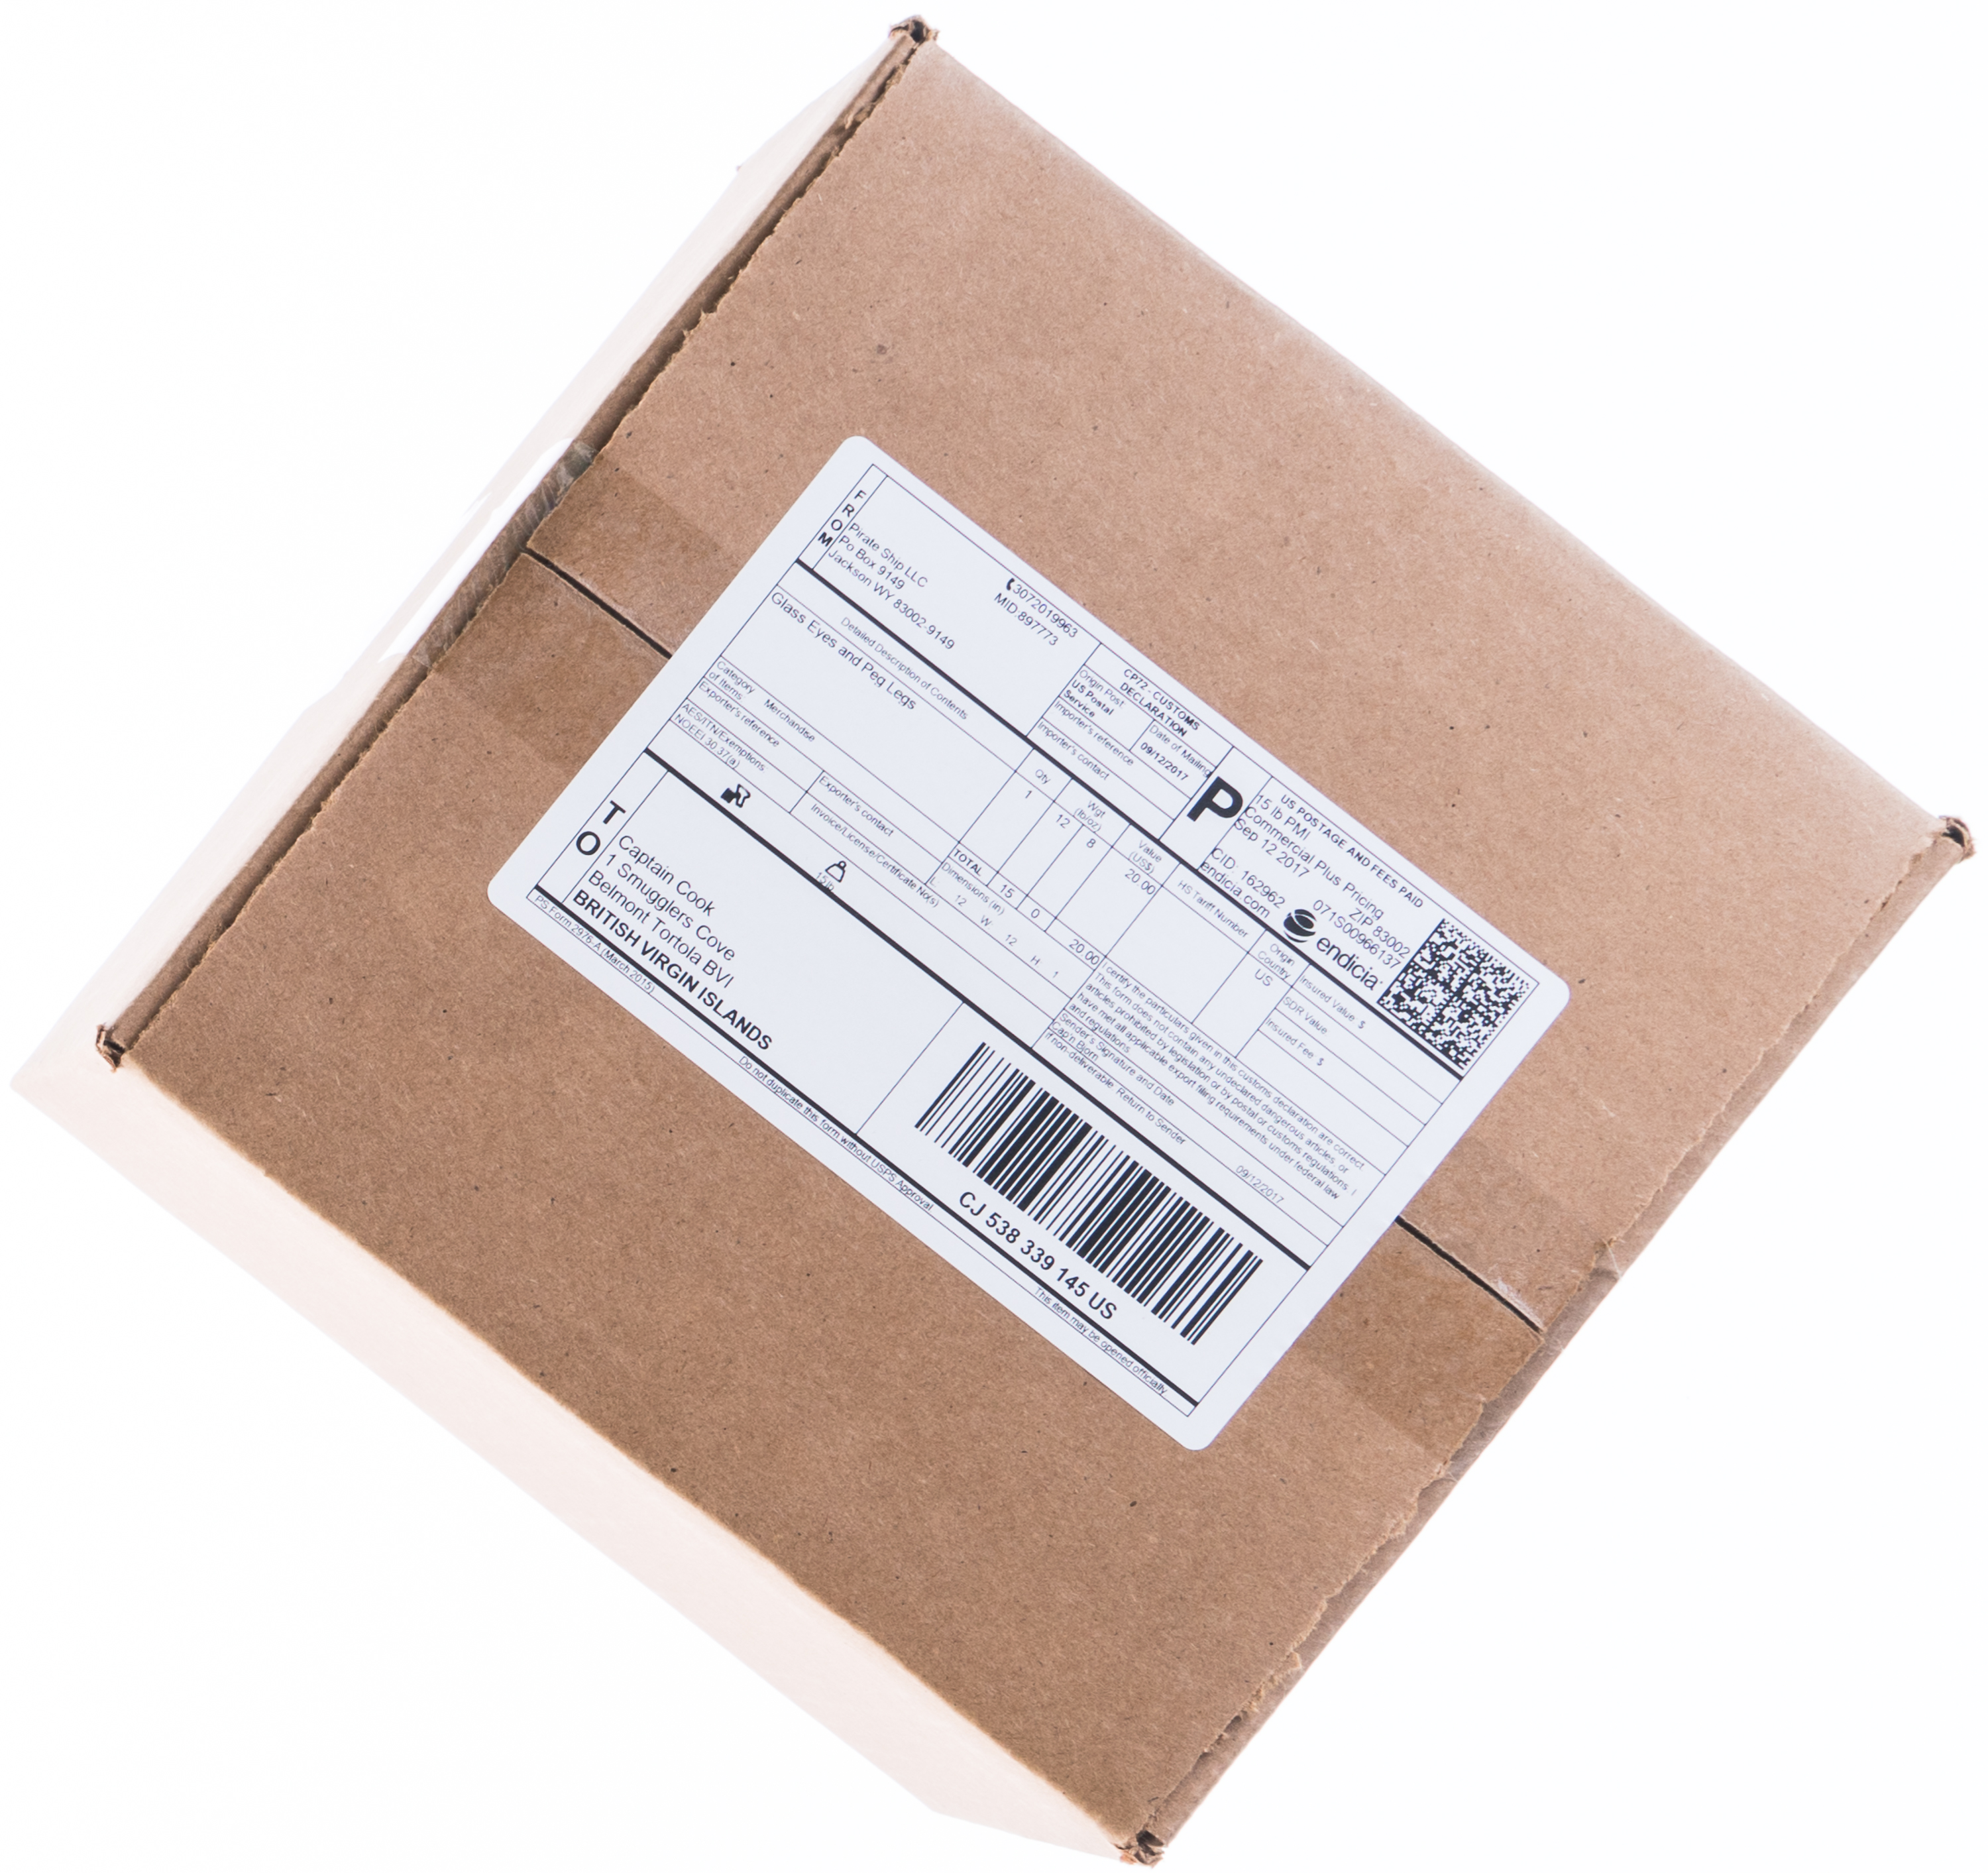 Shipping a box with USPS Priority Mail International